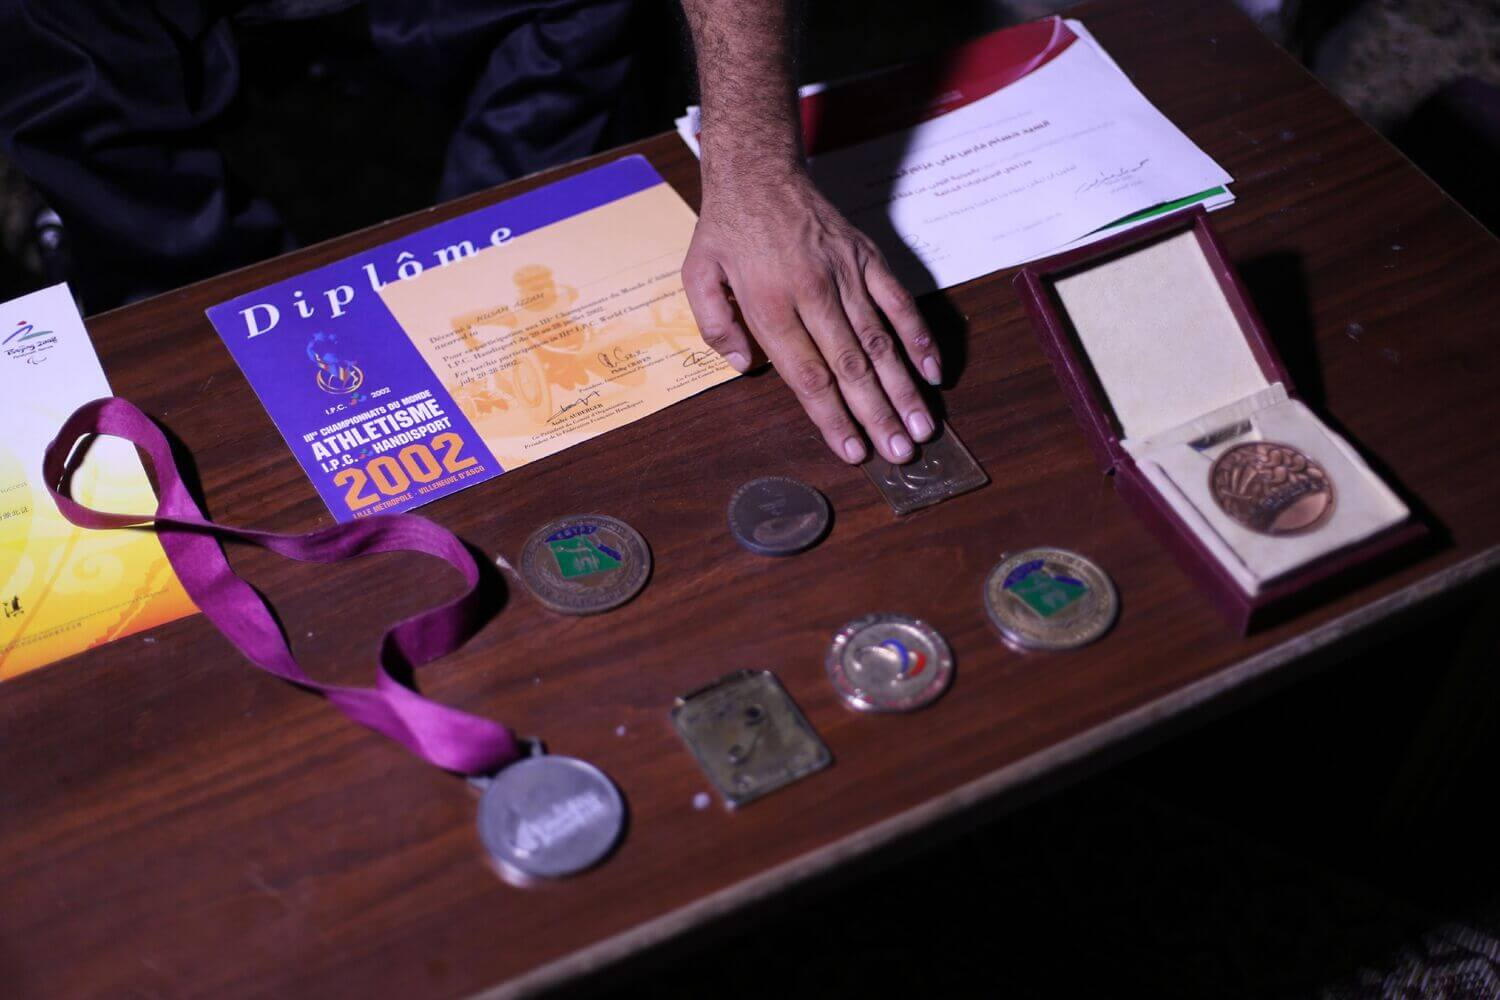 Hossam Azzum displays his medal won in past shot put competitions. Many of his awards were destroyed in 2014 during an Israeli airstrike on his house. (Photo: Mohammed Asad)